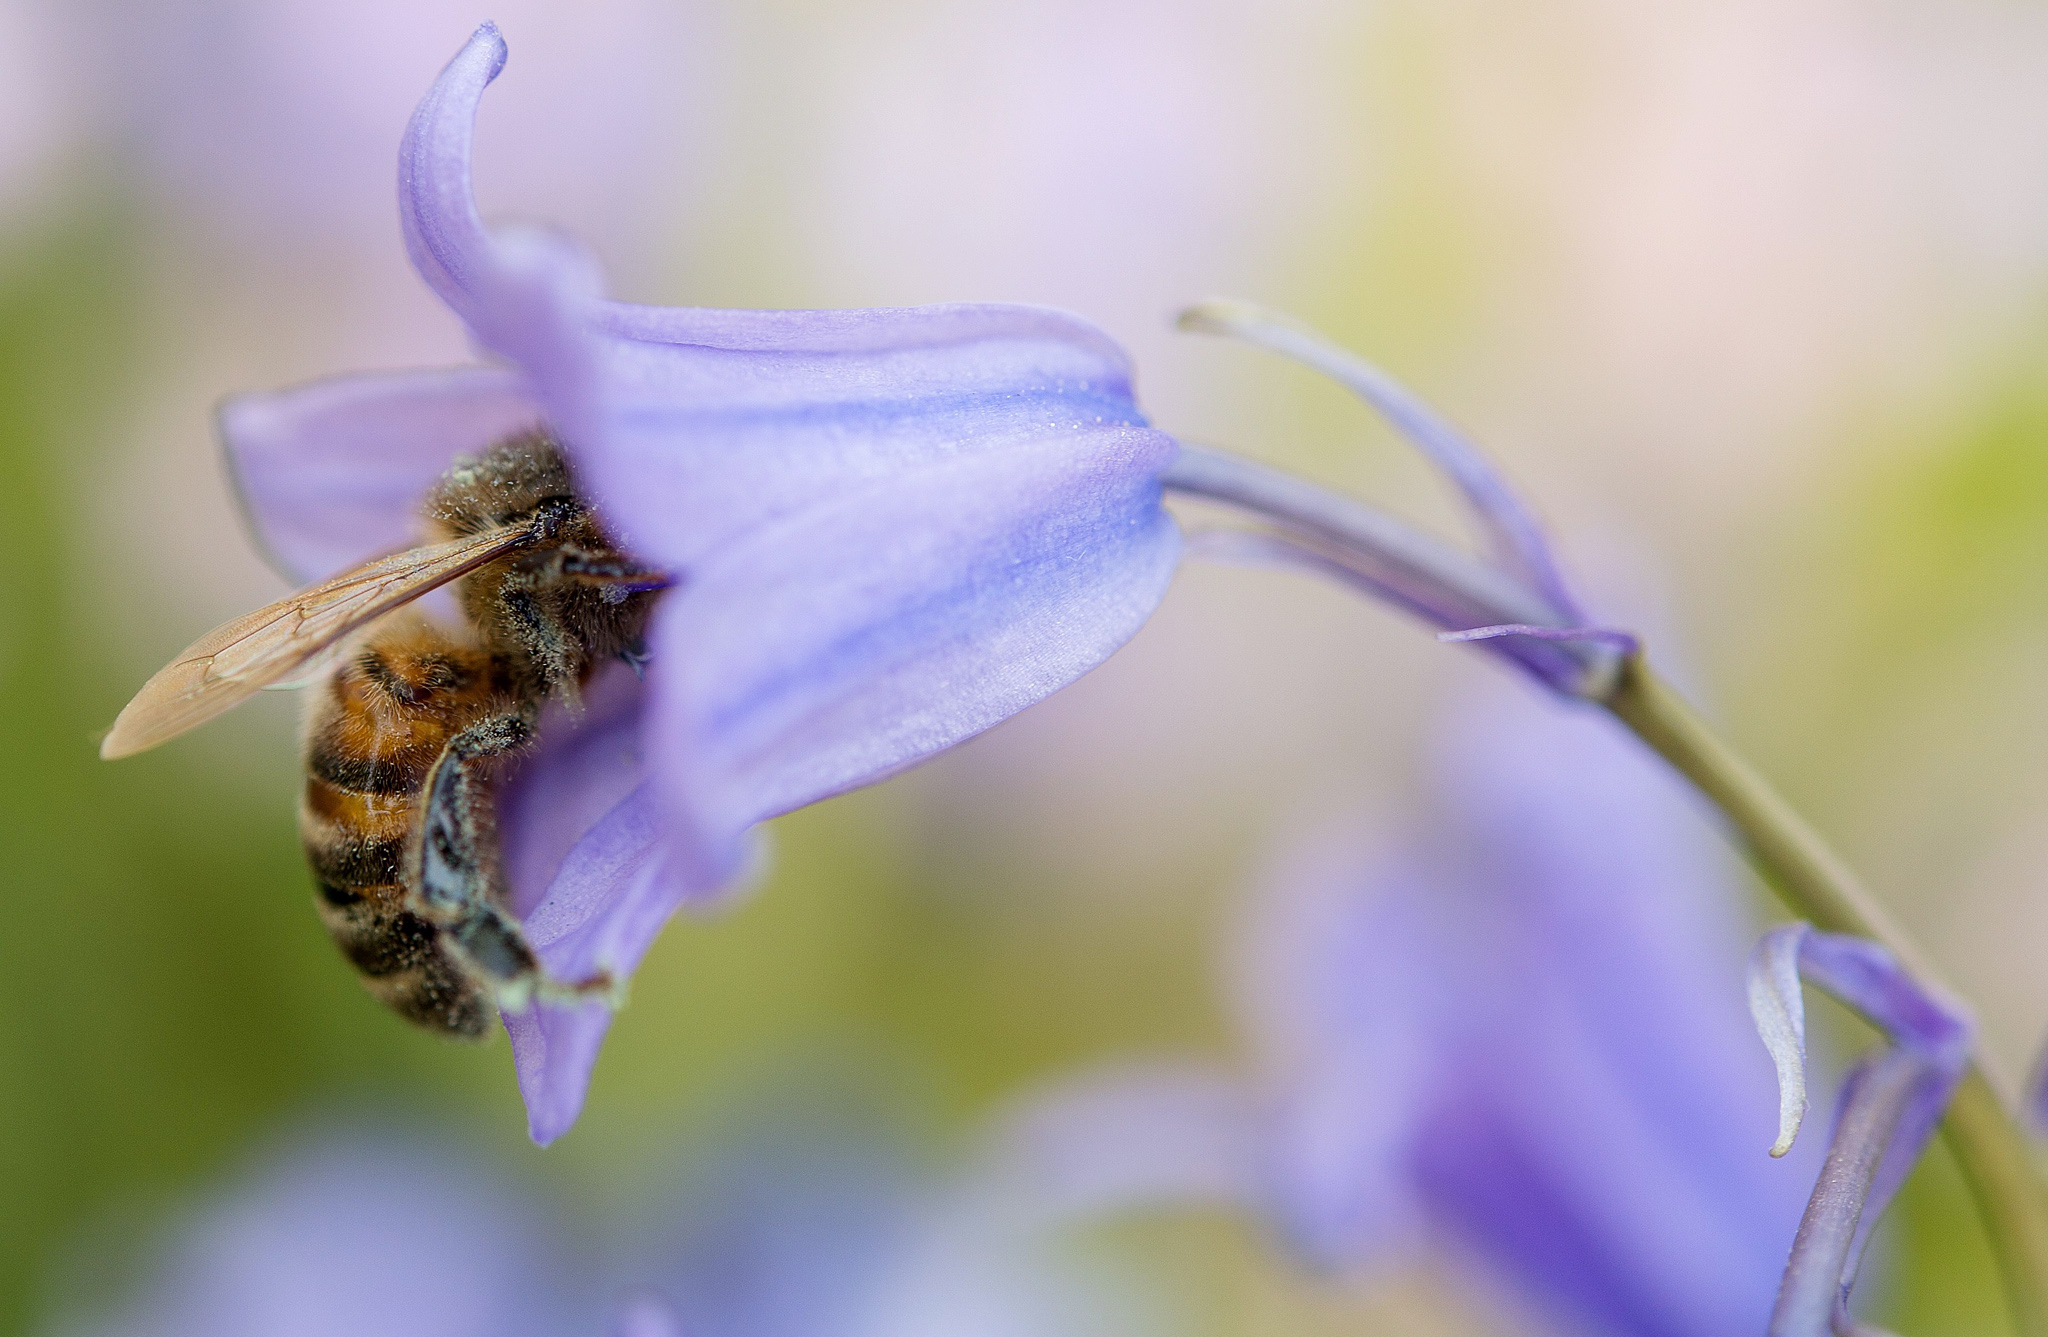 A bee collects pollen from a bluebell fl...A bee collects pollen from a bluebell flower at the Herrenhaeuser Gaerten park in Hanover, central Germany, on May 9, 2016. / AFP PHOTO / dpa / Sebastian Gollnow / Germany OUTSEBASTIAN GOLLNOW/AFP/Getty Images